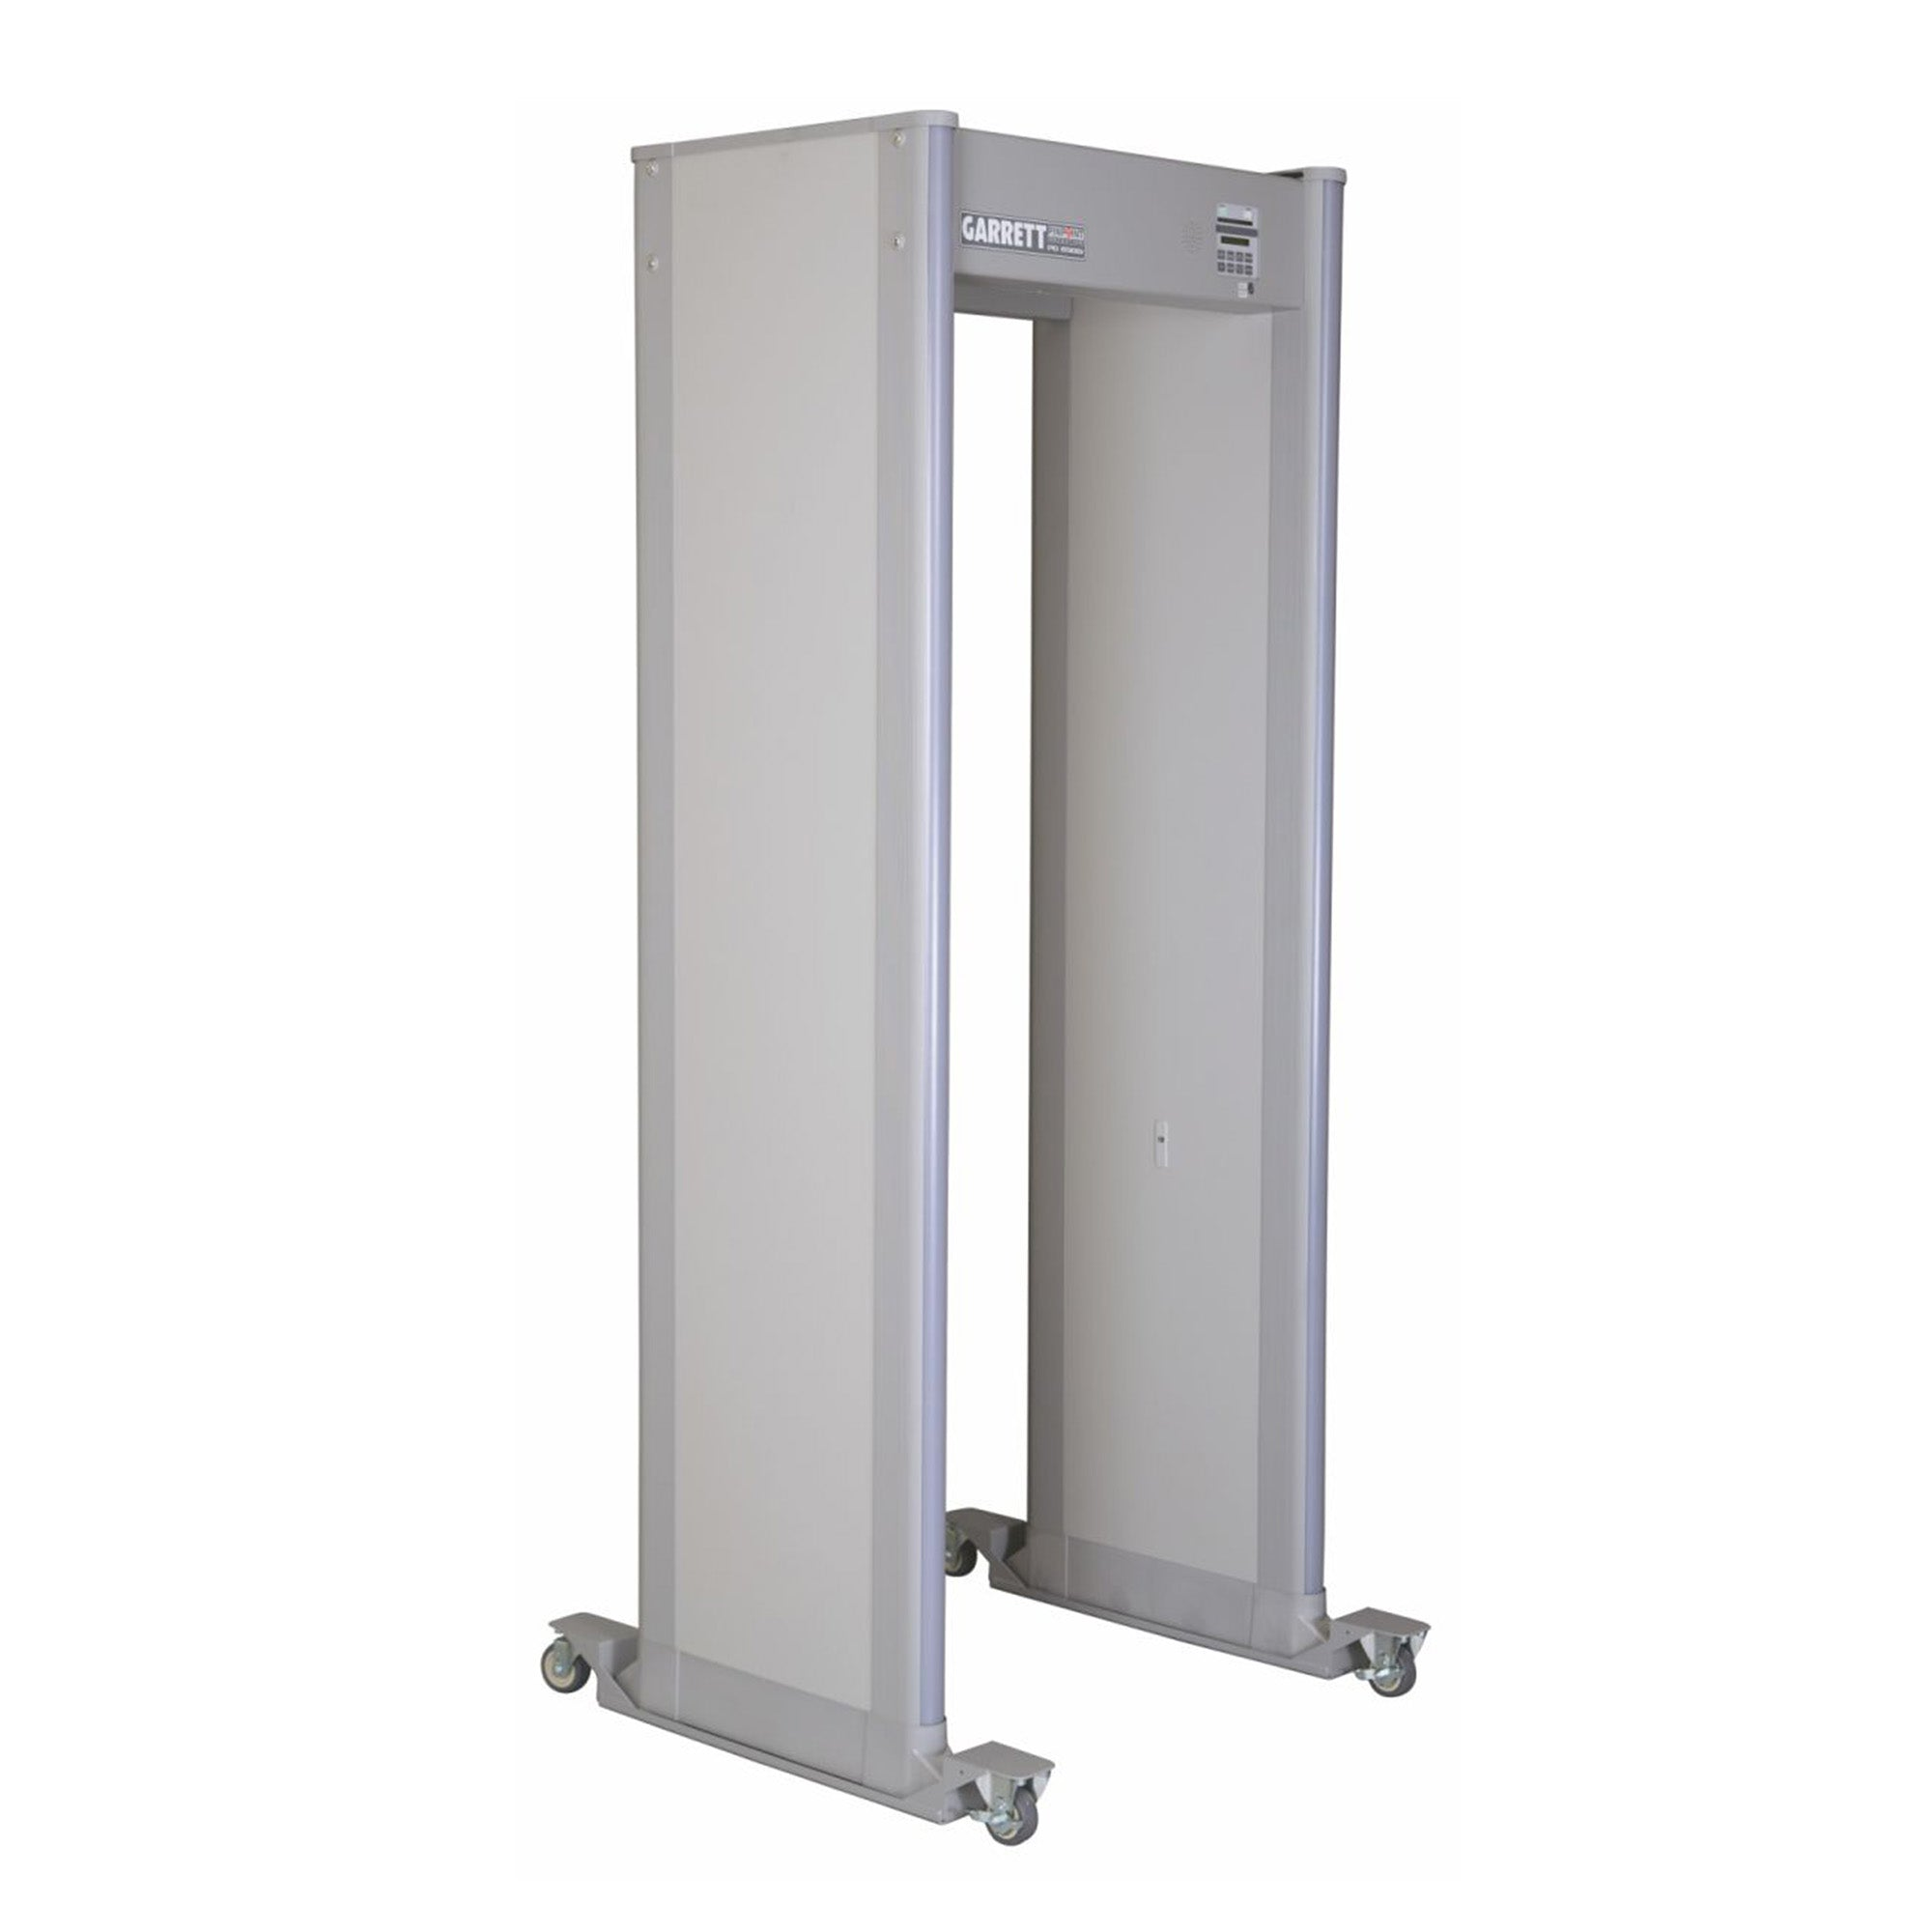 Garrett PD 6500i Walkthrough Metal Detector - Grey